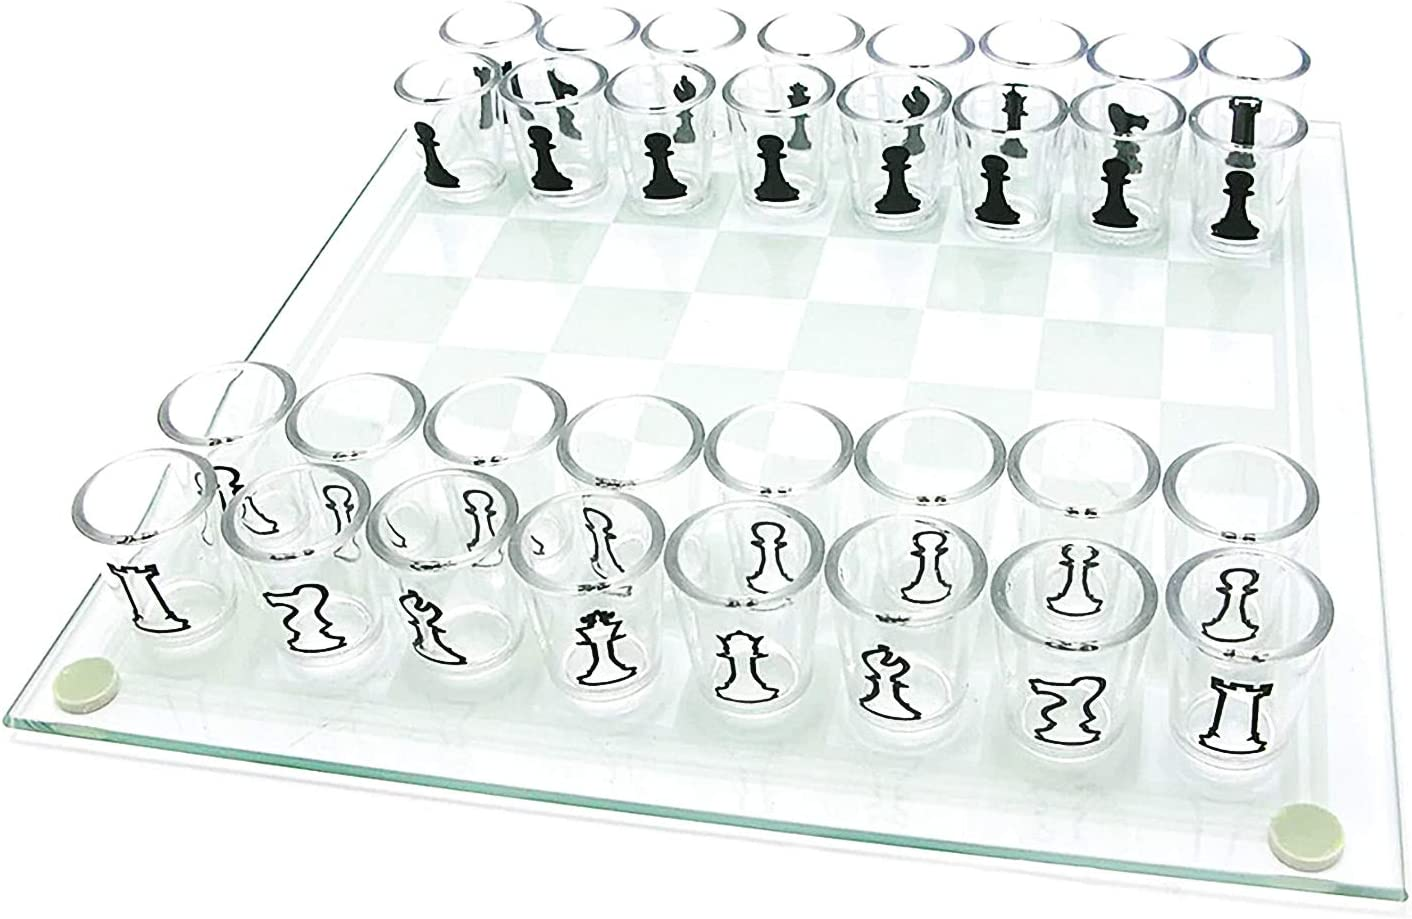 Lomubue Drinking outlet Game Chess Board Set Ch Clear Glass Popular standard Shot Small